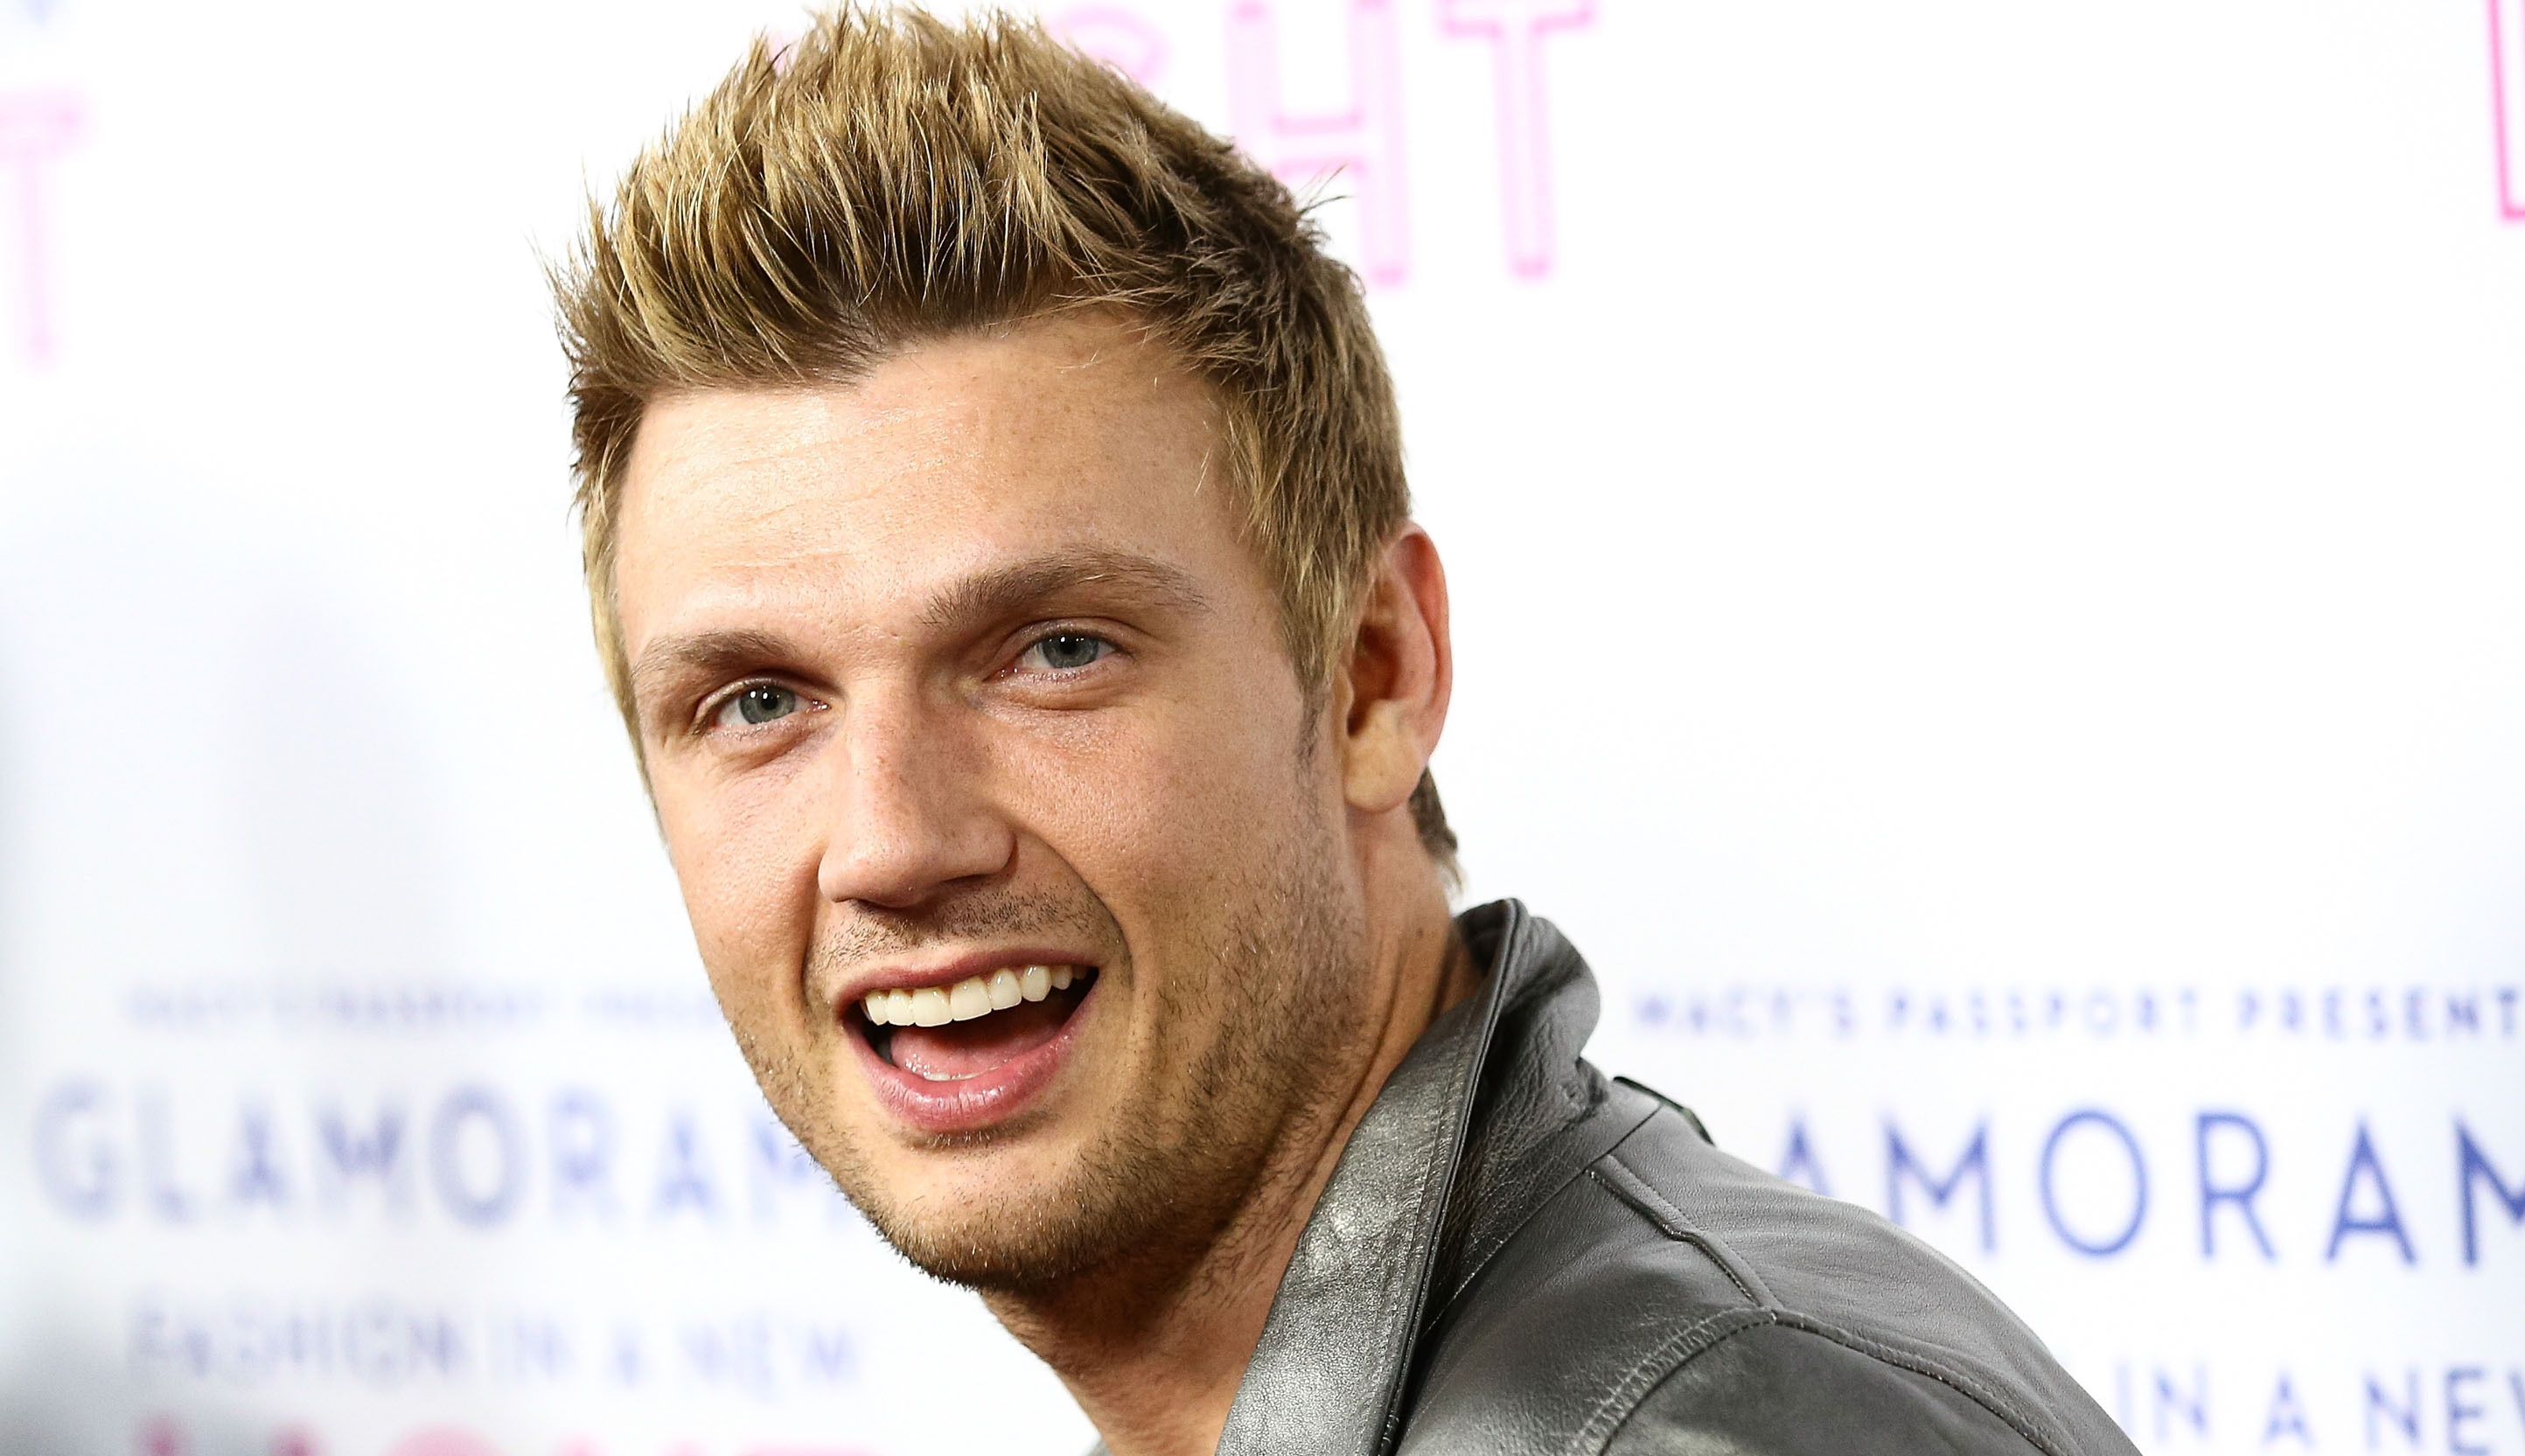 Pictures Of Nick Carter